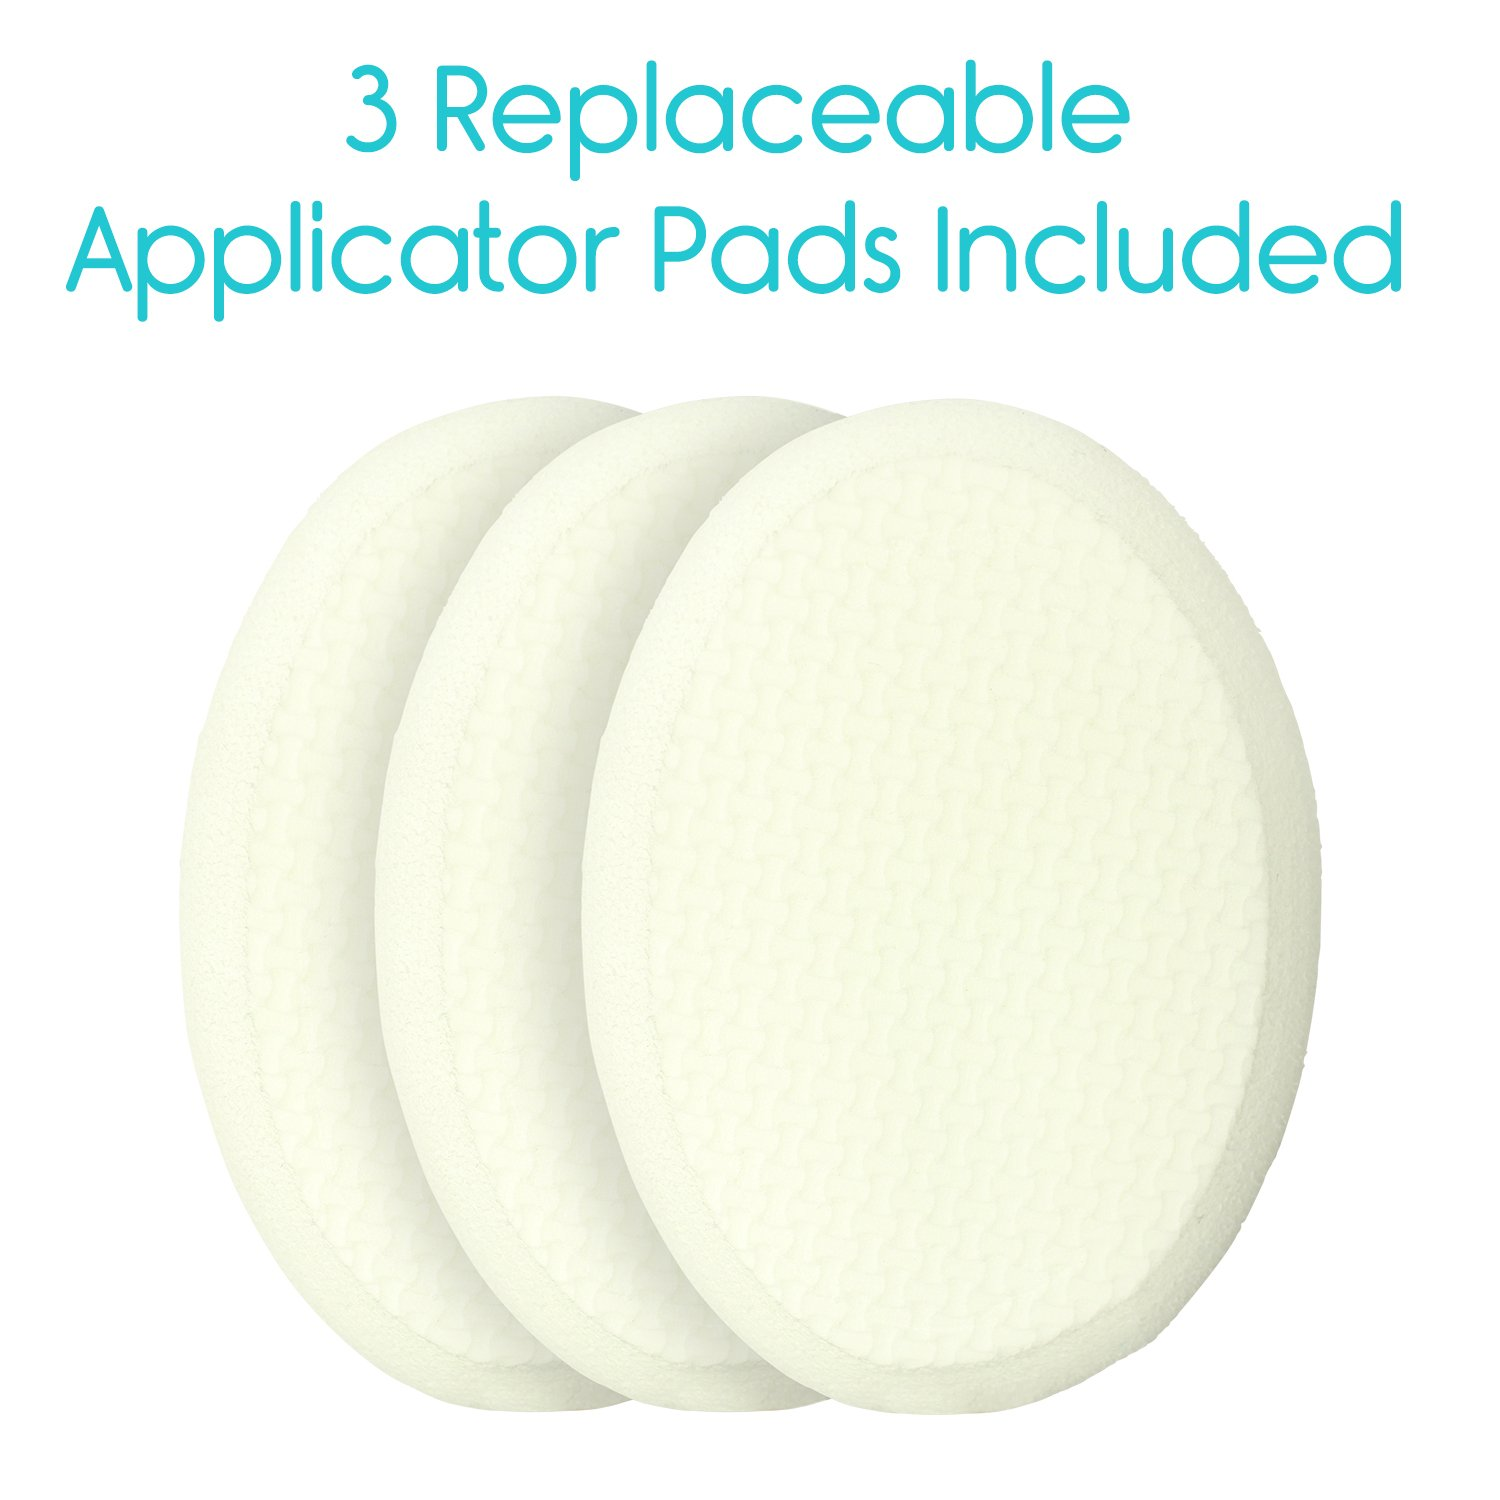 Back Lotion Applicator by Vive - Long Reach Handle With Pad for Easy Self Application of Shower Bath Body Wash Brush, Foot Sponge, Skin Cream, Suntan, Tanning, Aloe - Men, Women (3 Replacement Pads) by VIVE (Image #6)